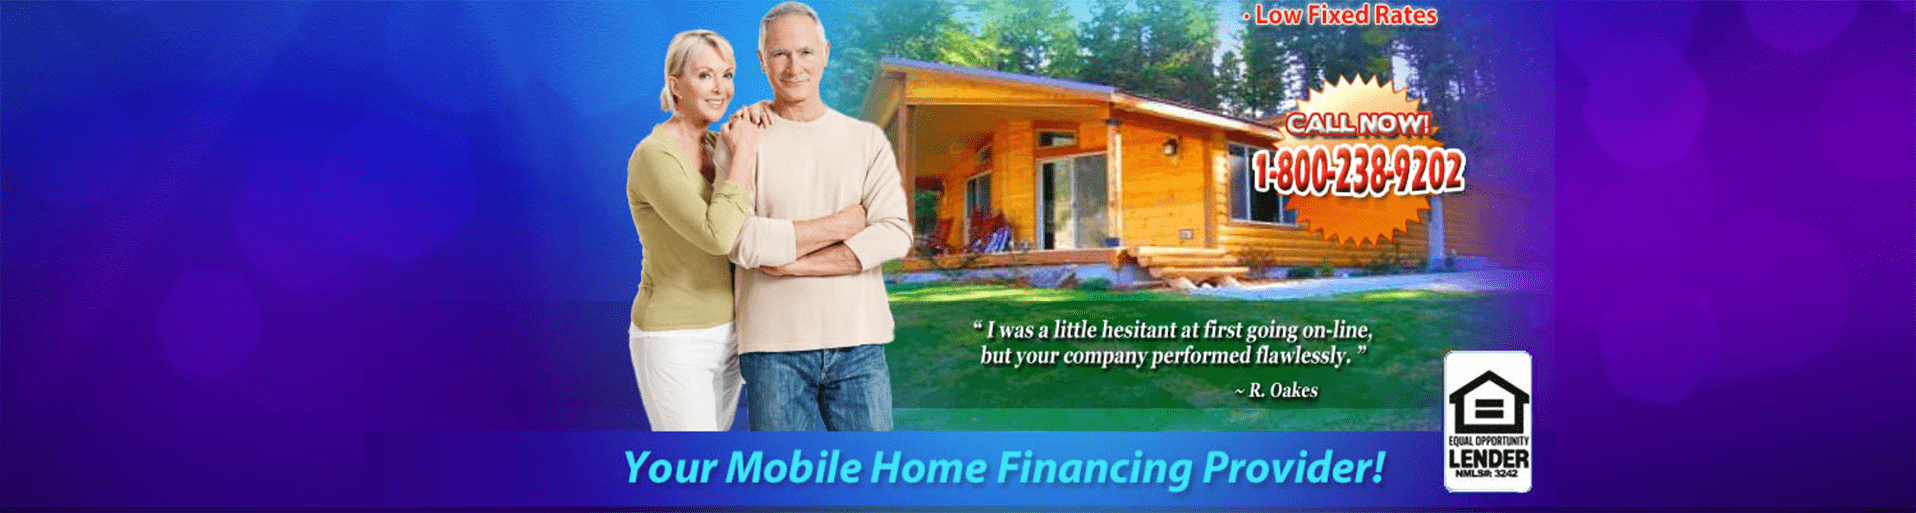 Mobile Home Loan Calculator